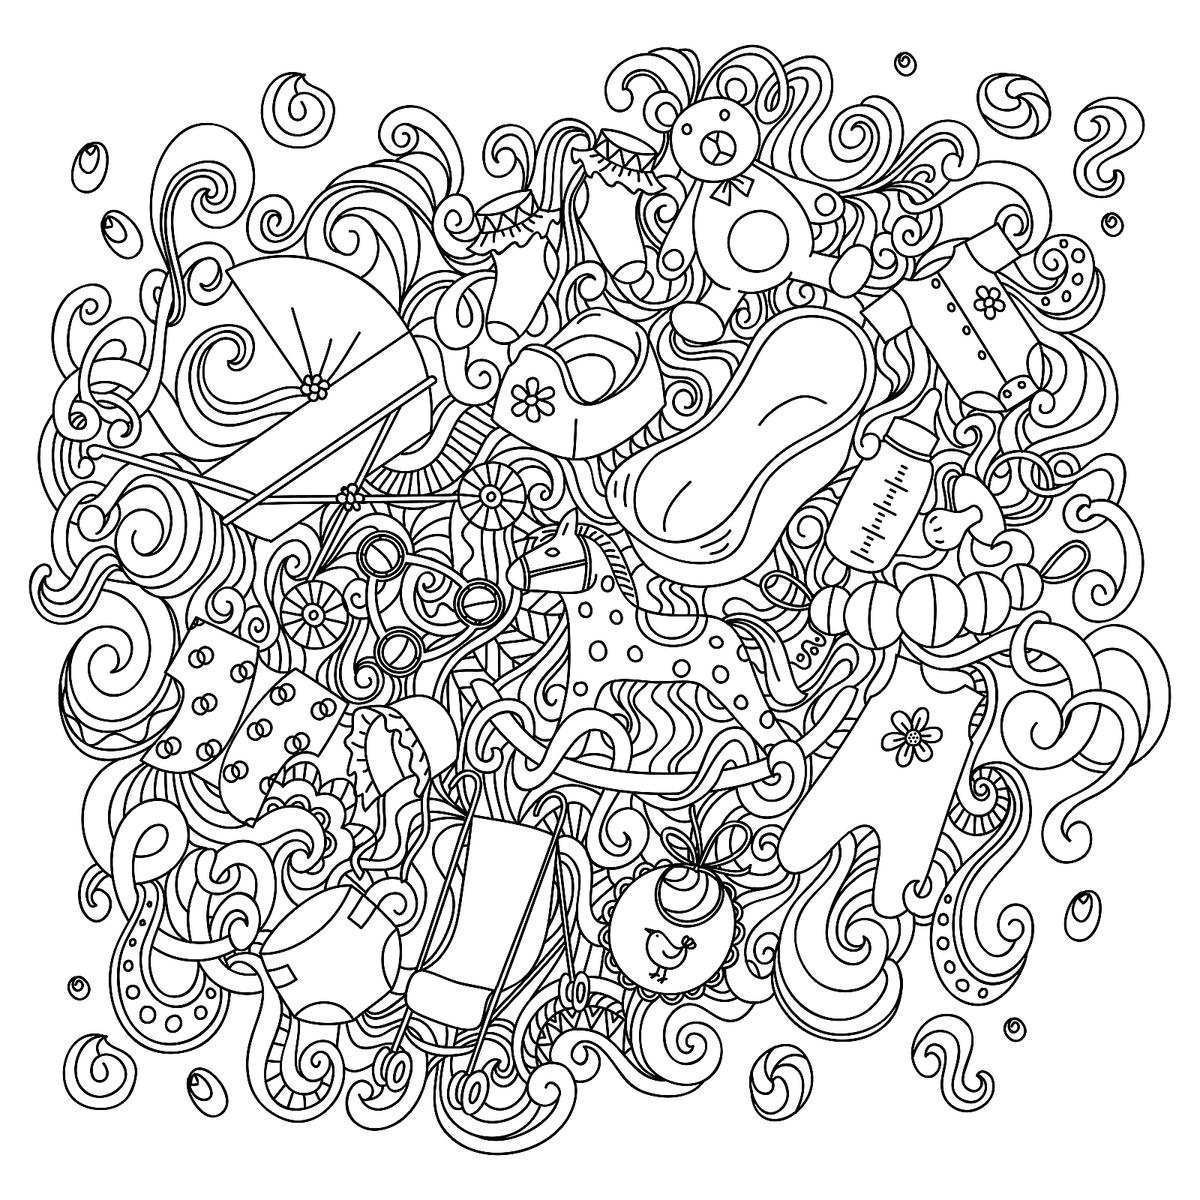 Pregnancy Coloring Pages: Free Pregnancy Printables for Mom-to-Be ...